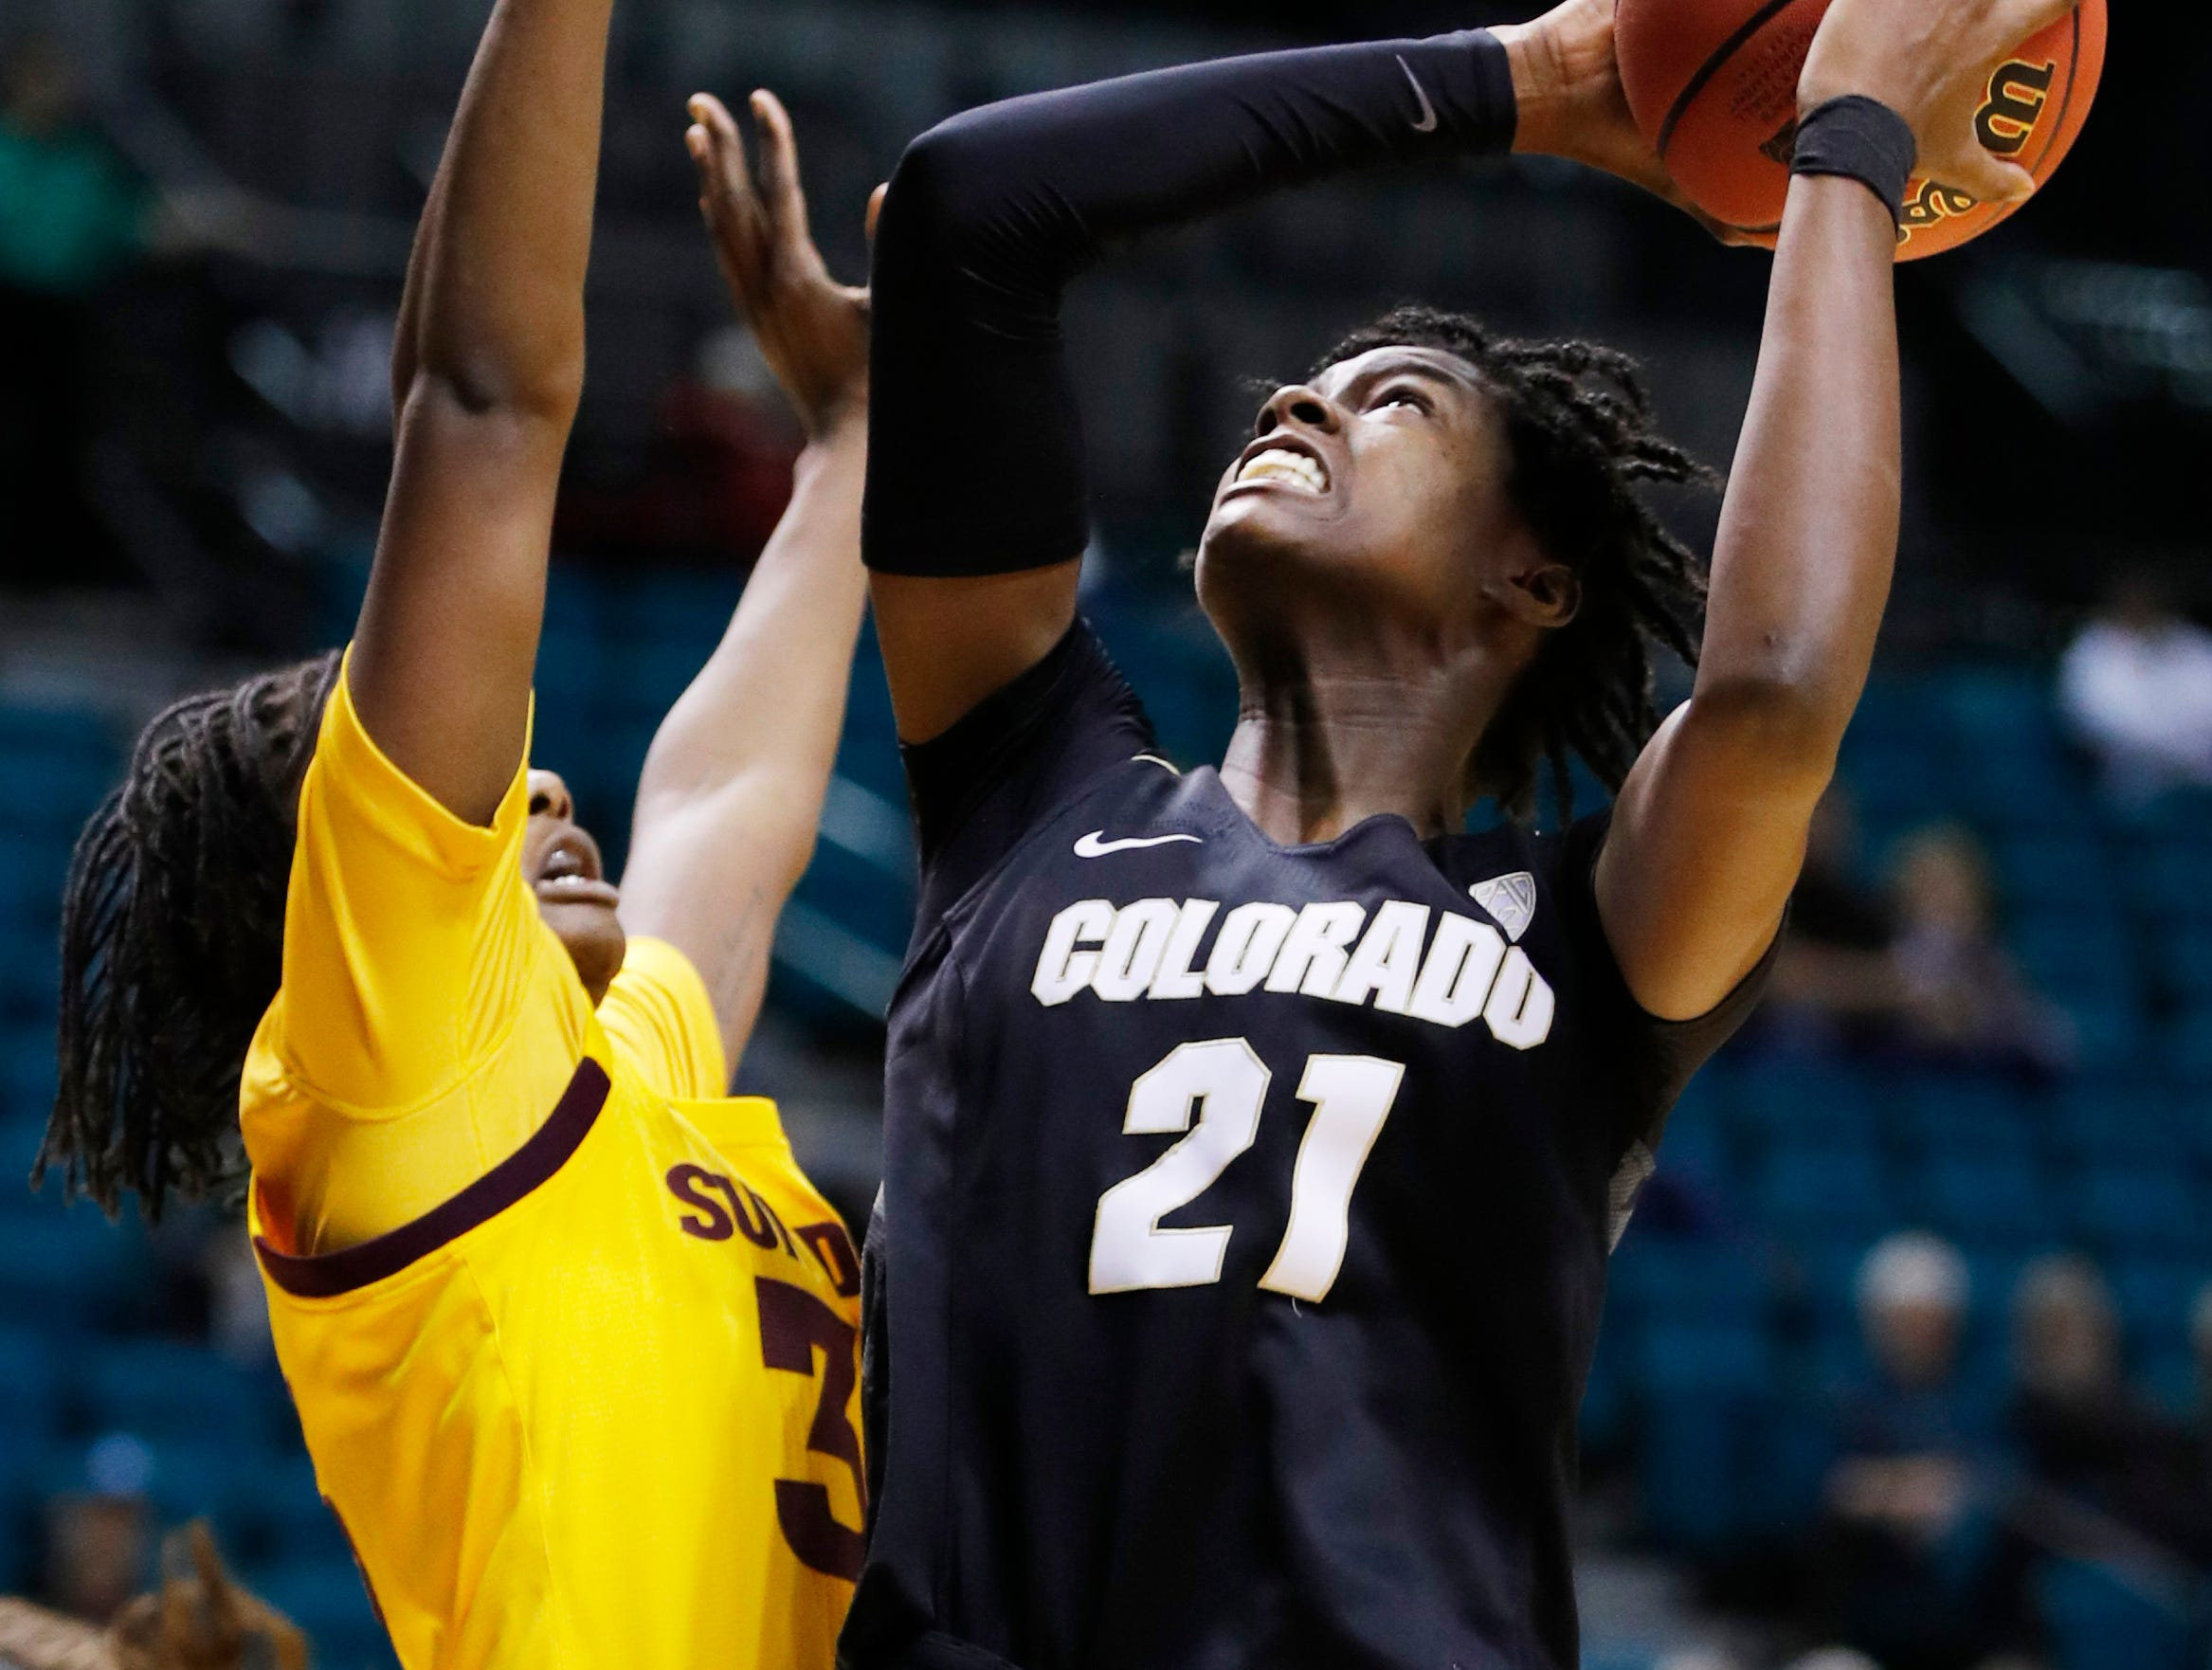 Colorado's Mya Hollingshed shoots over Arizona State's Charnea Johnson-Chapman during the first half of an NCAA college basketball game at the Pac-12 women's tournament Thursday, March 7, 2019, in Las Vegas. (AP Photo/John Locher)